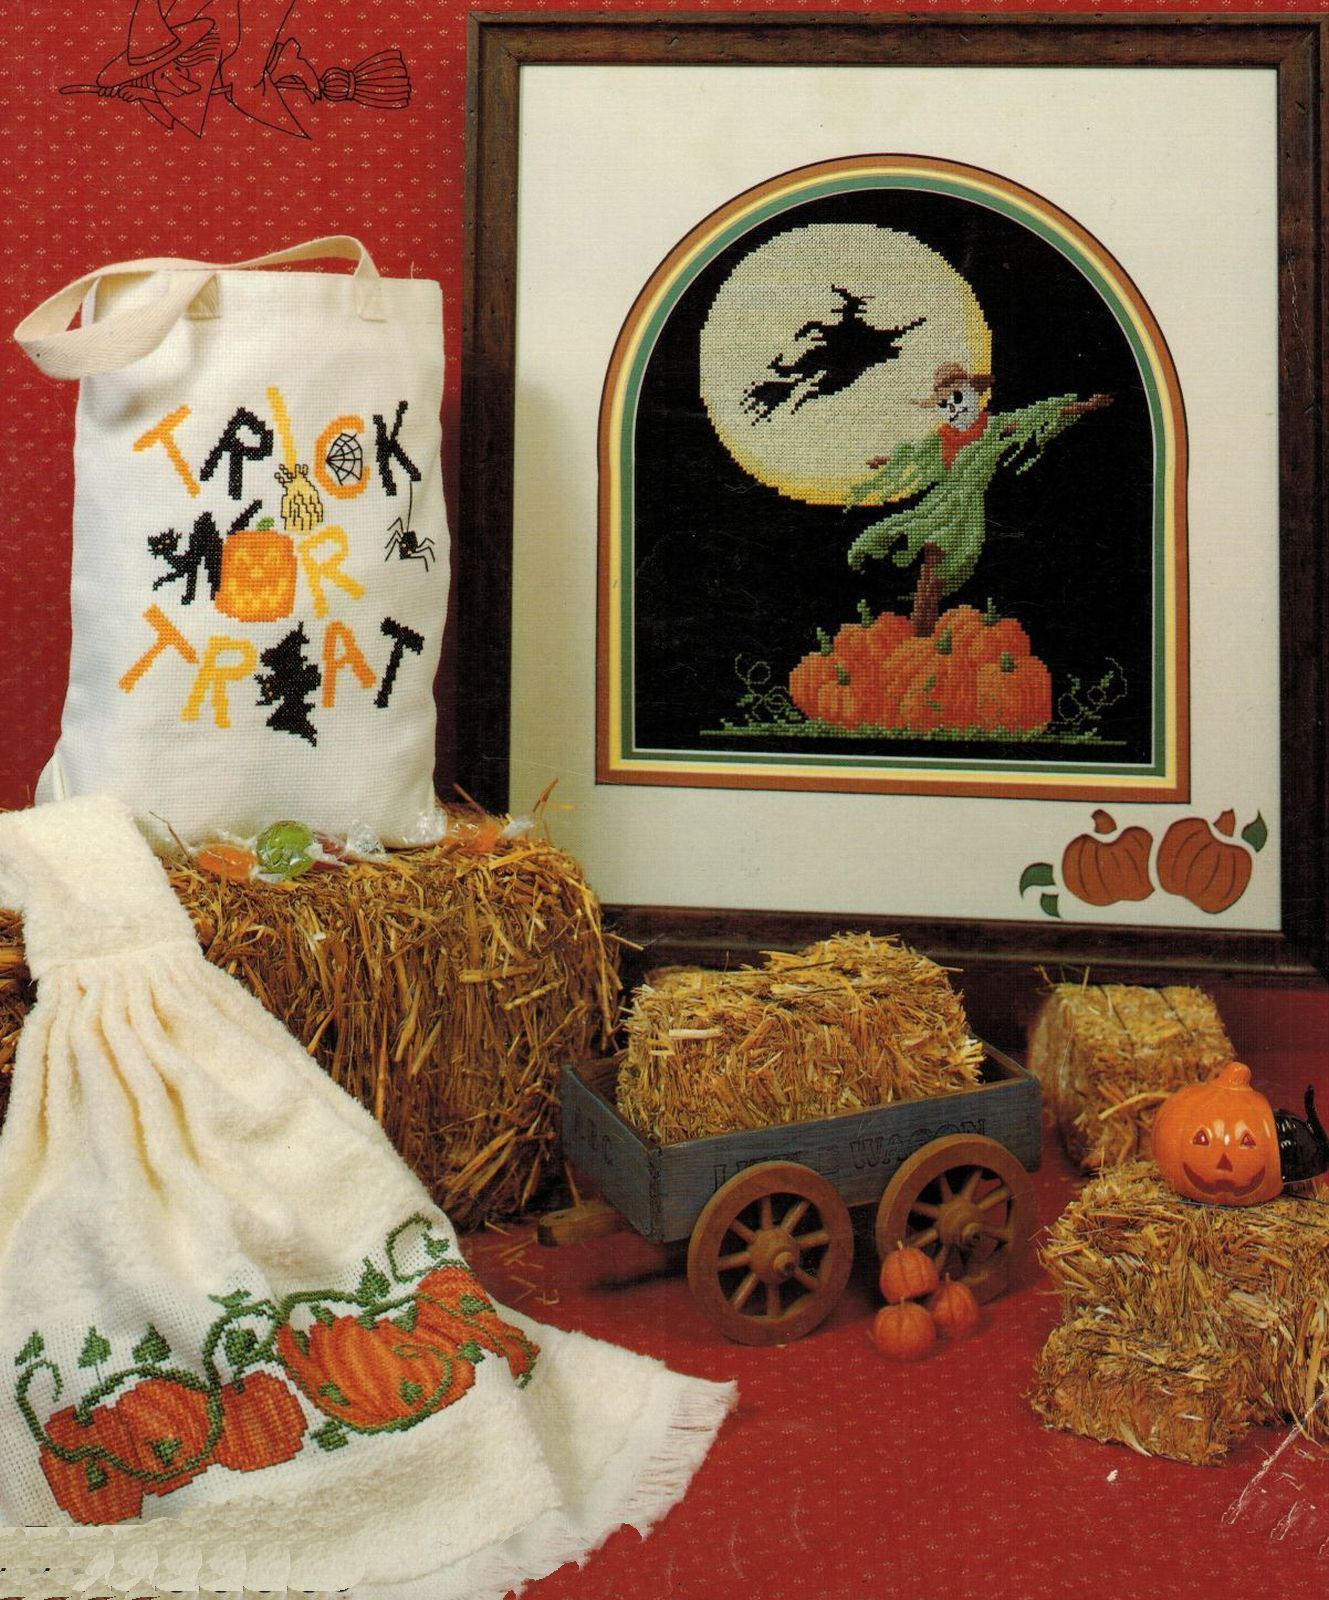 Primary image for Cross Stitch Halloween Night Watchman Sampler Treat Bag Pumpkin Towel Pattern